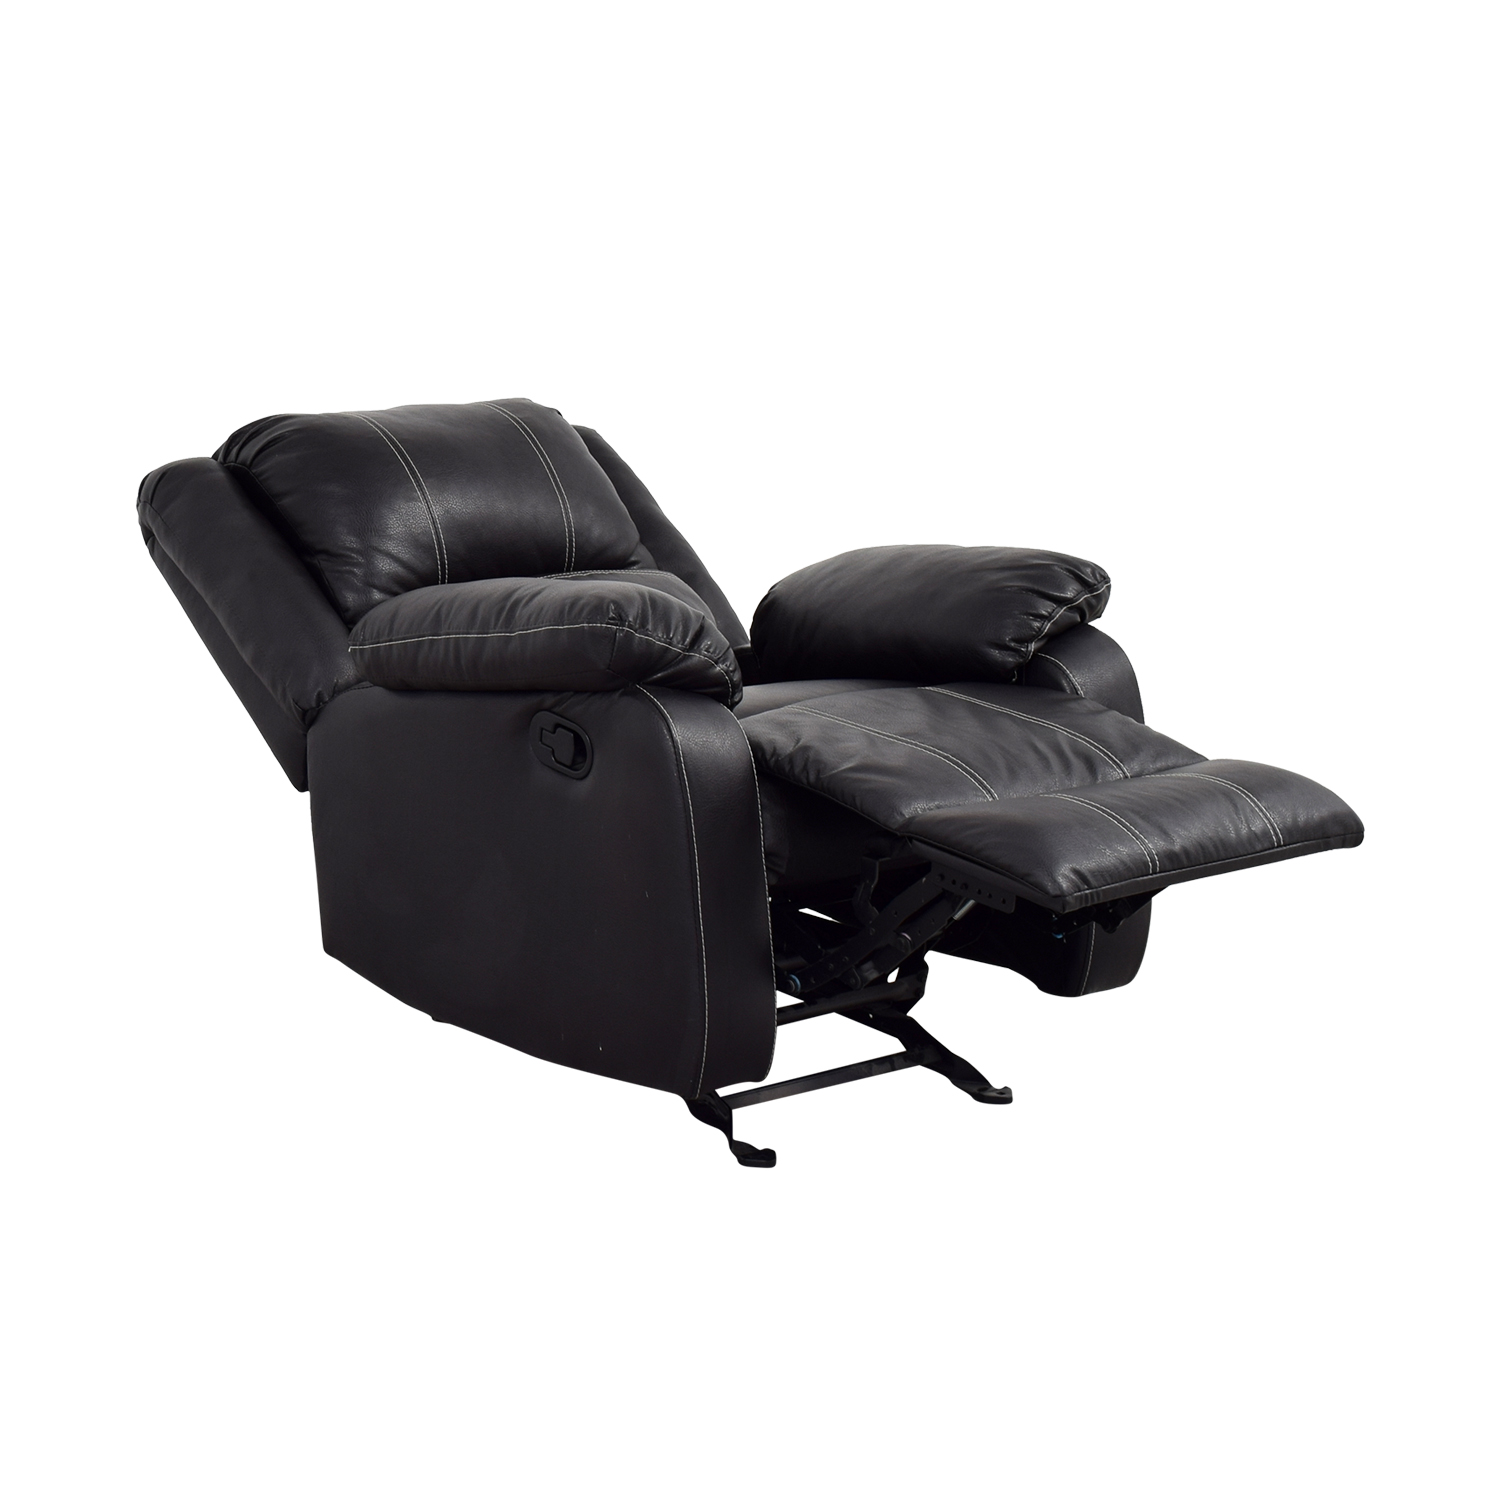 Acme Acme Black Leather Recliner nj